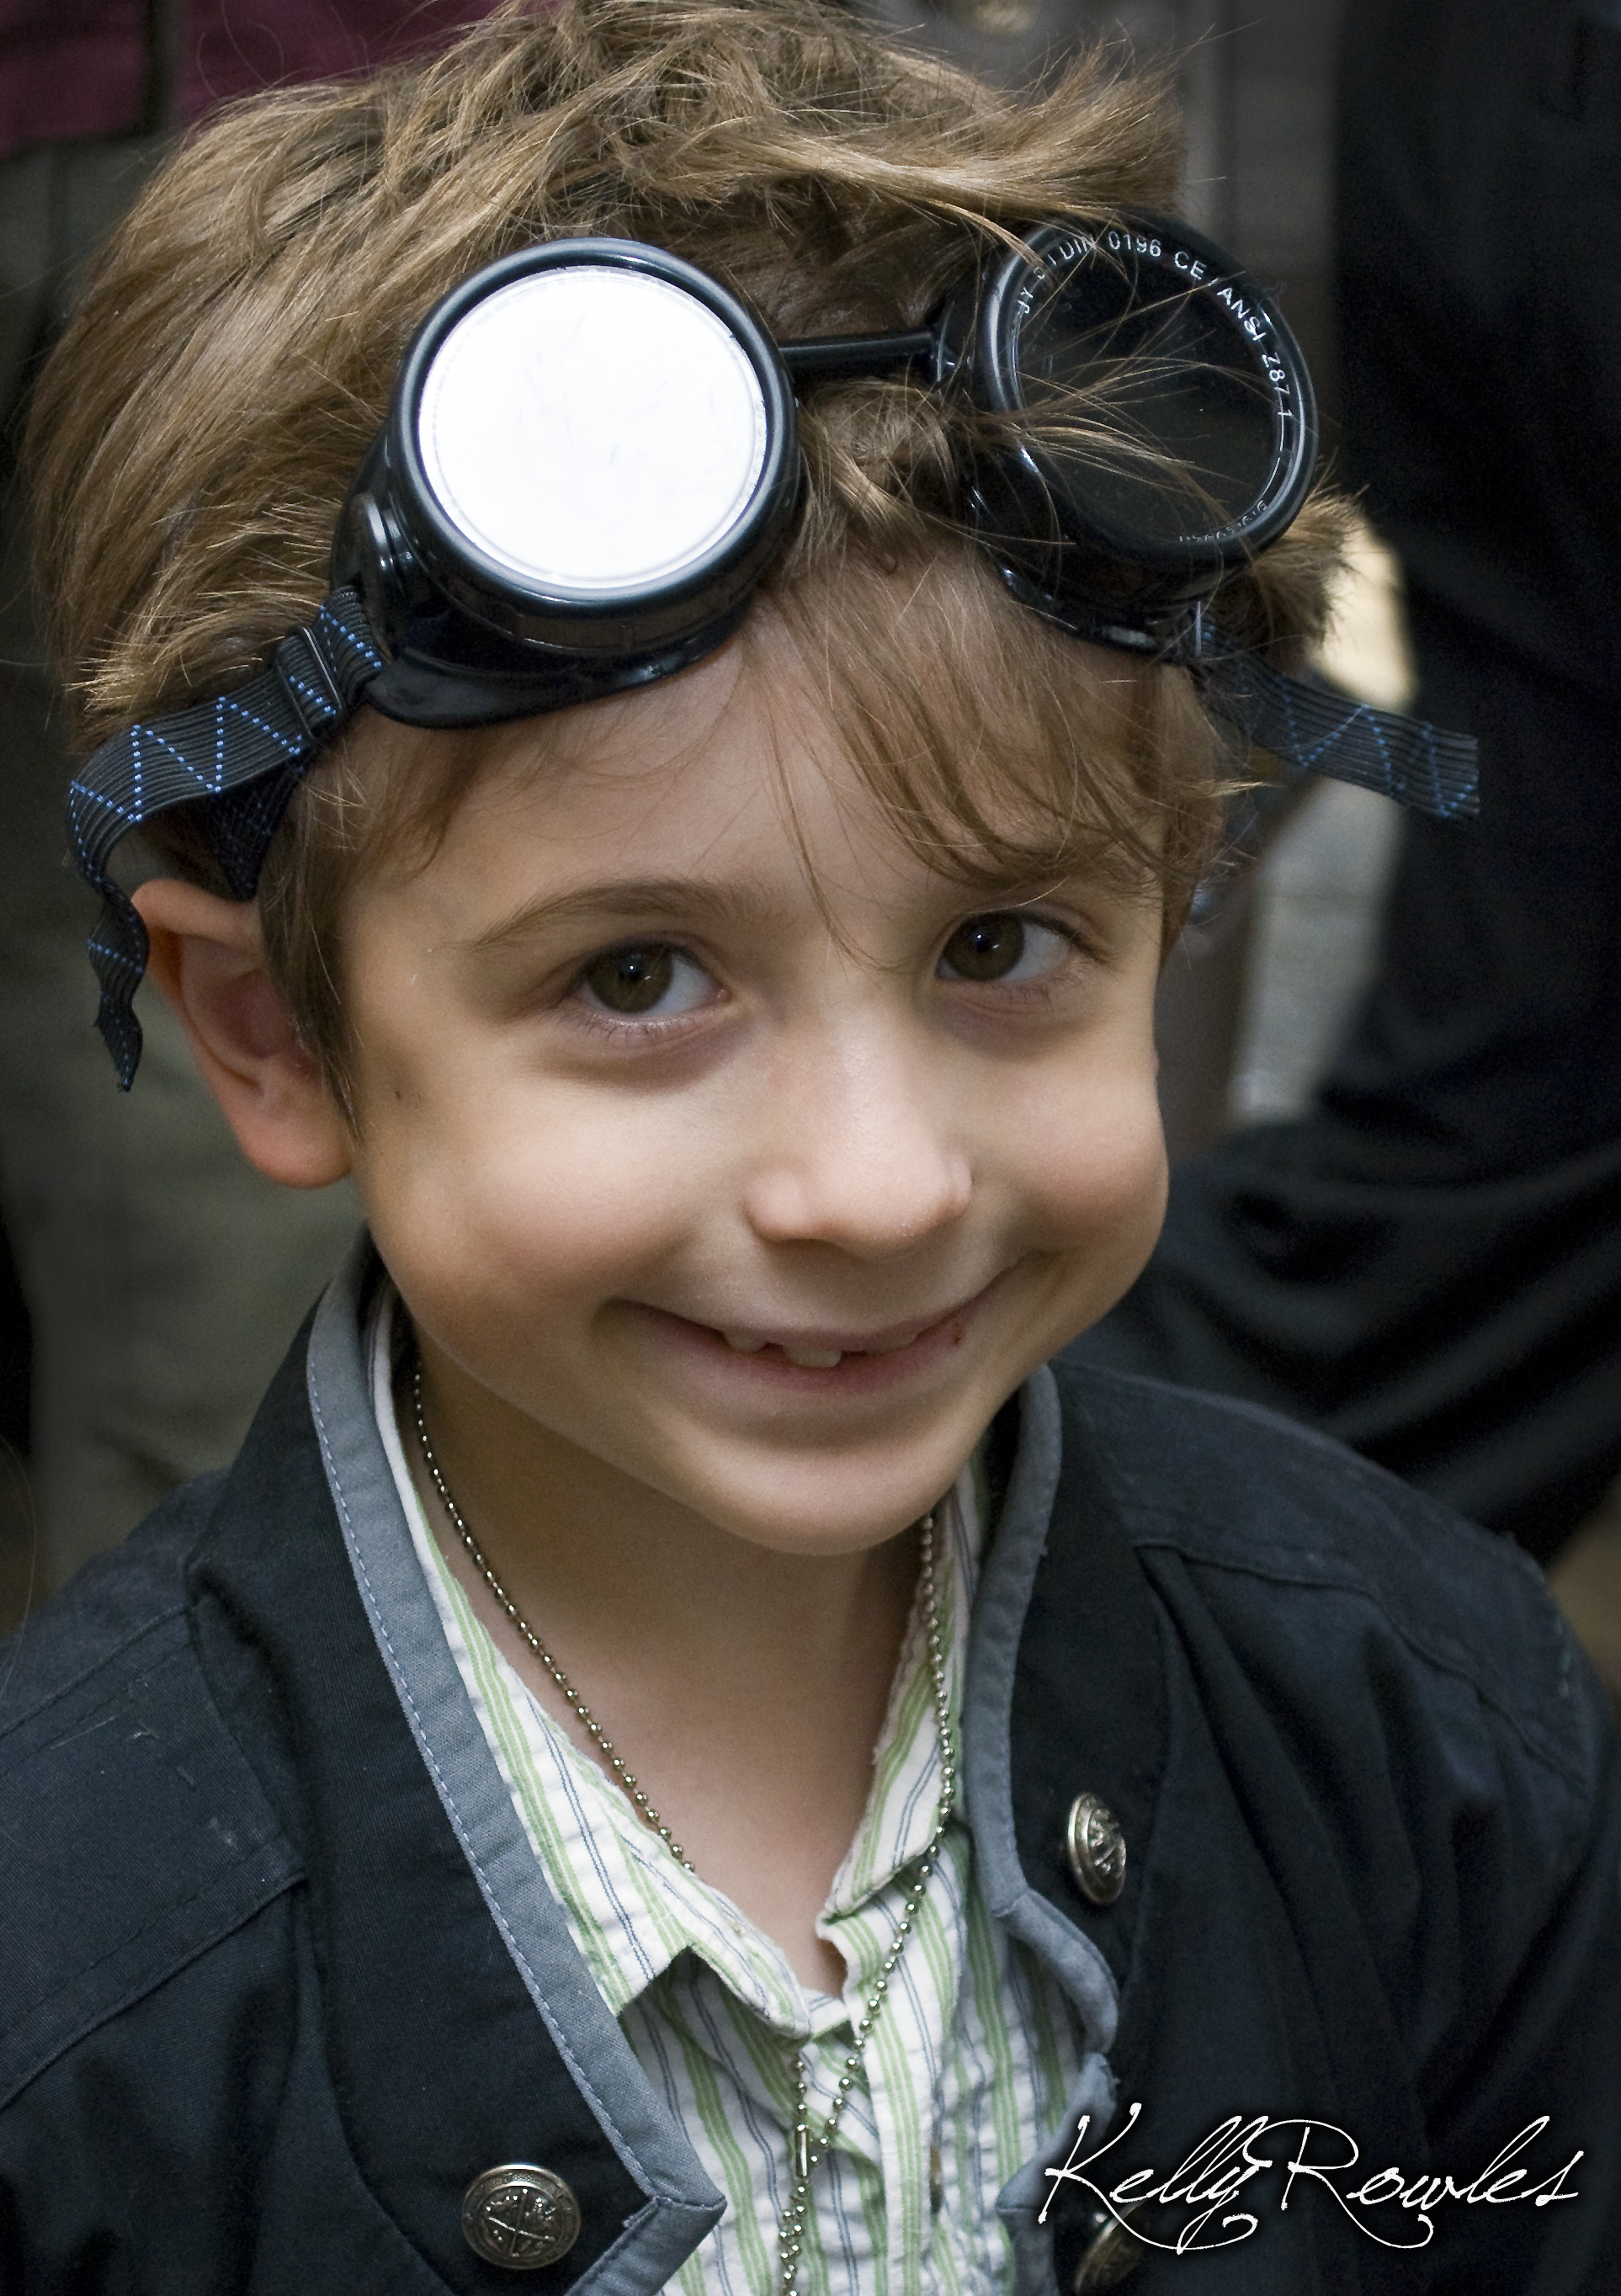 Cutest. Steampunker. Ever. (photo by Kelly Rowles)